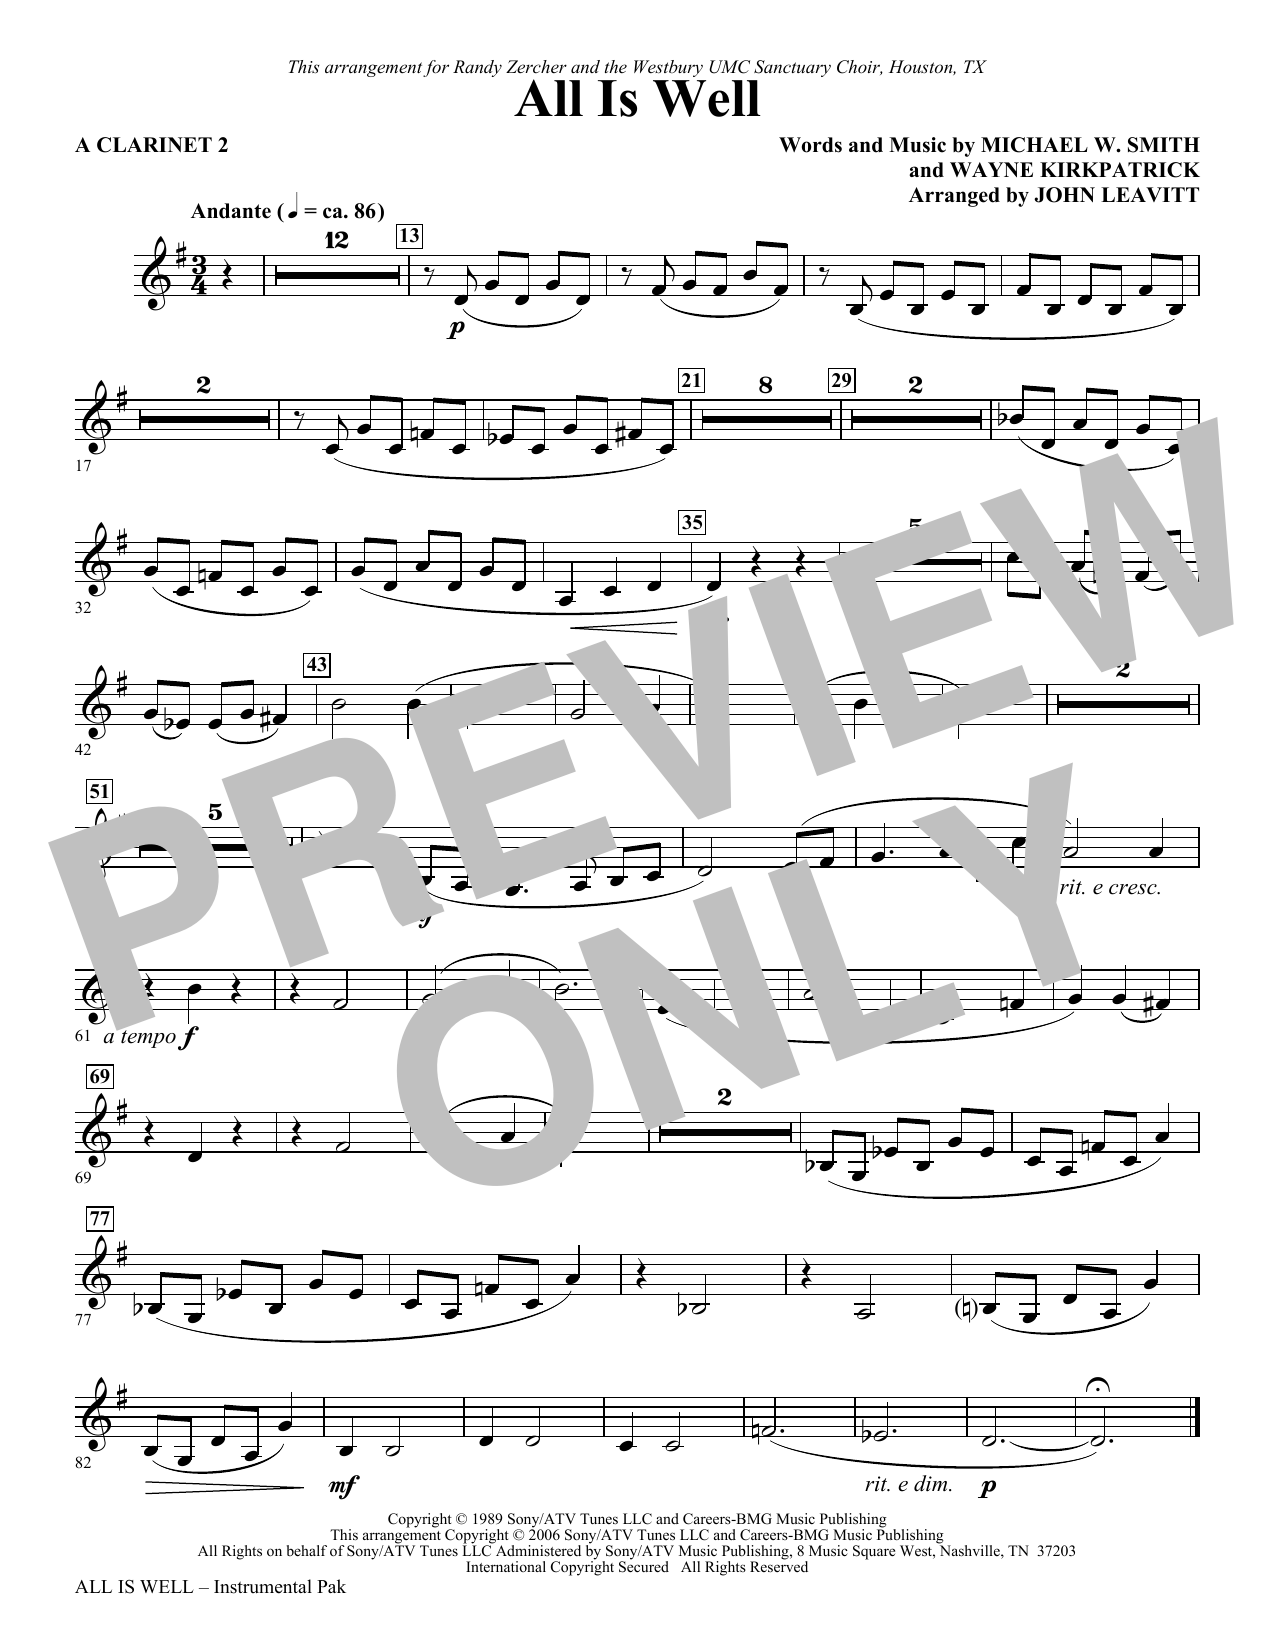 All Is Well - A Clarinet 2 Sheet Music